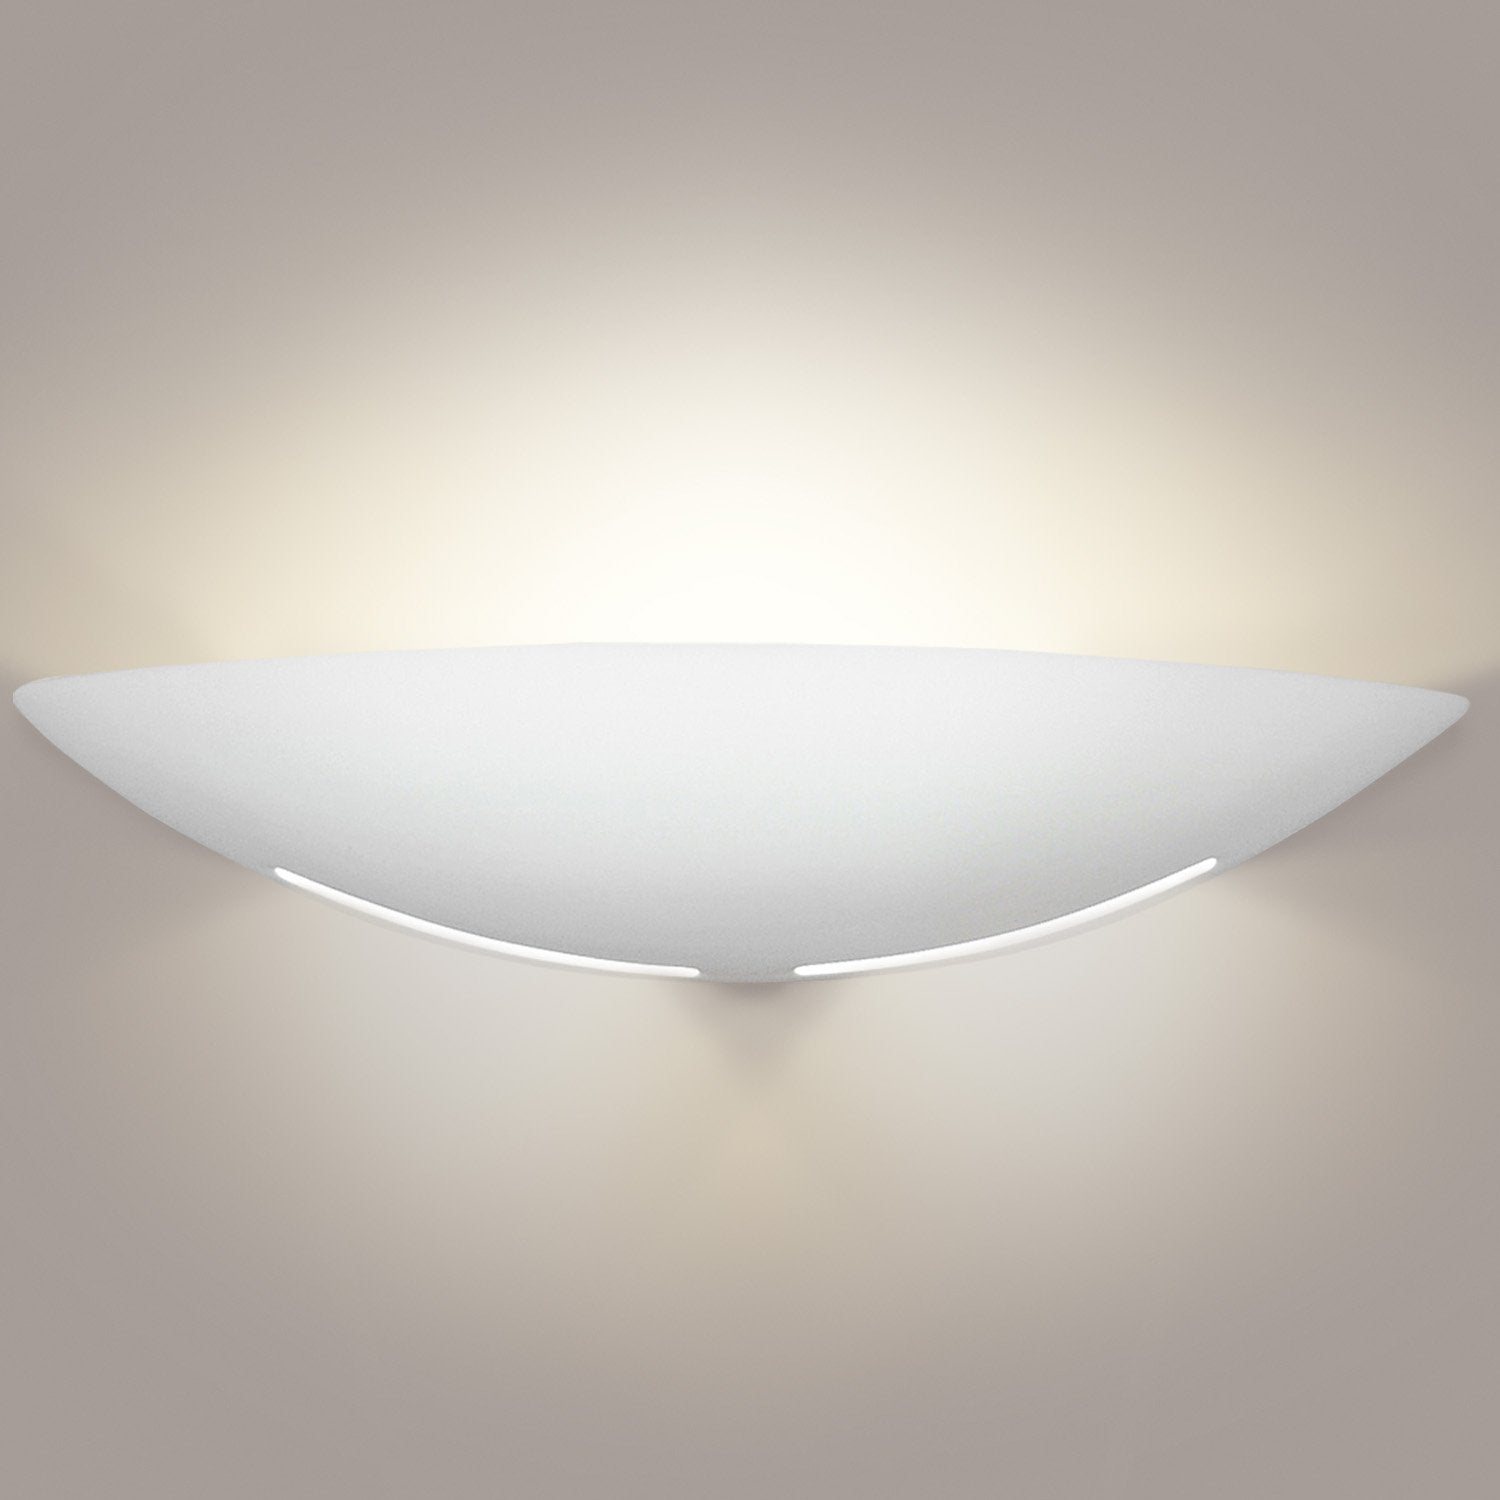 A19 1205-A4 Islands of Light Collection Kauai Pearl Finish Wall Sconce from A19